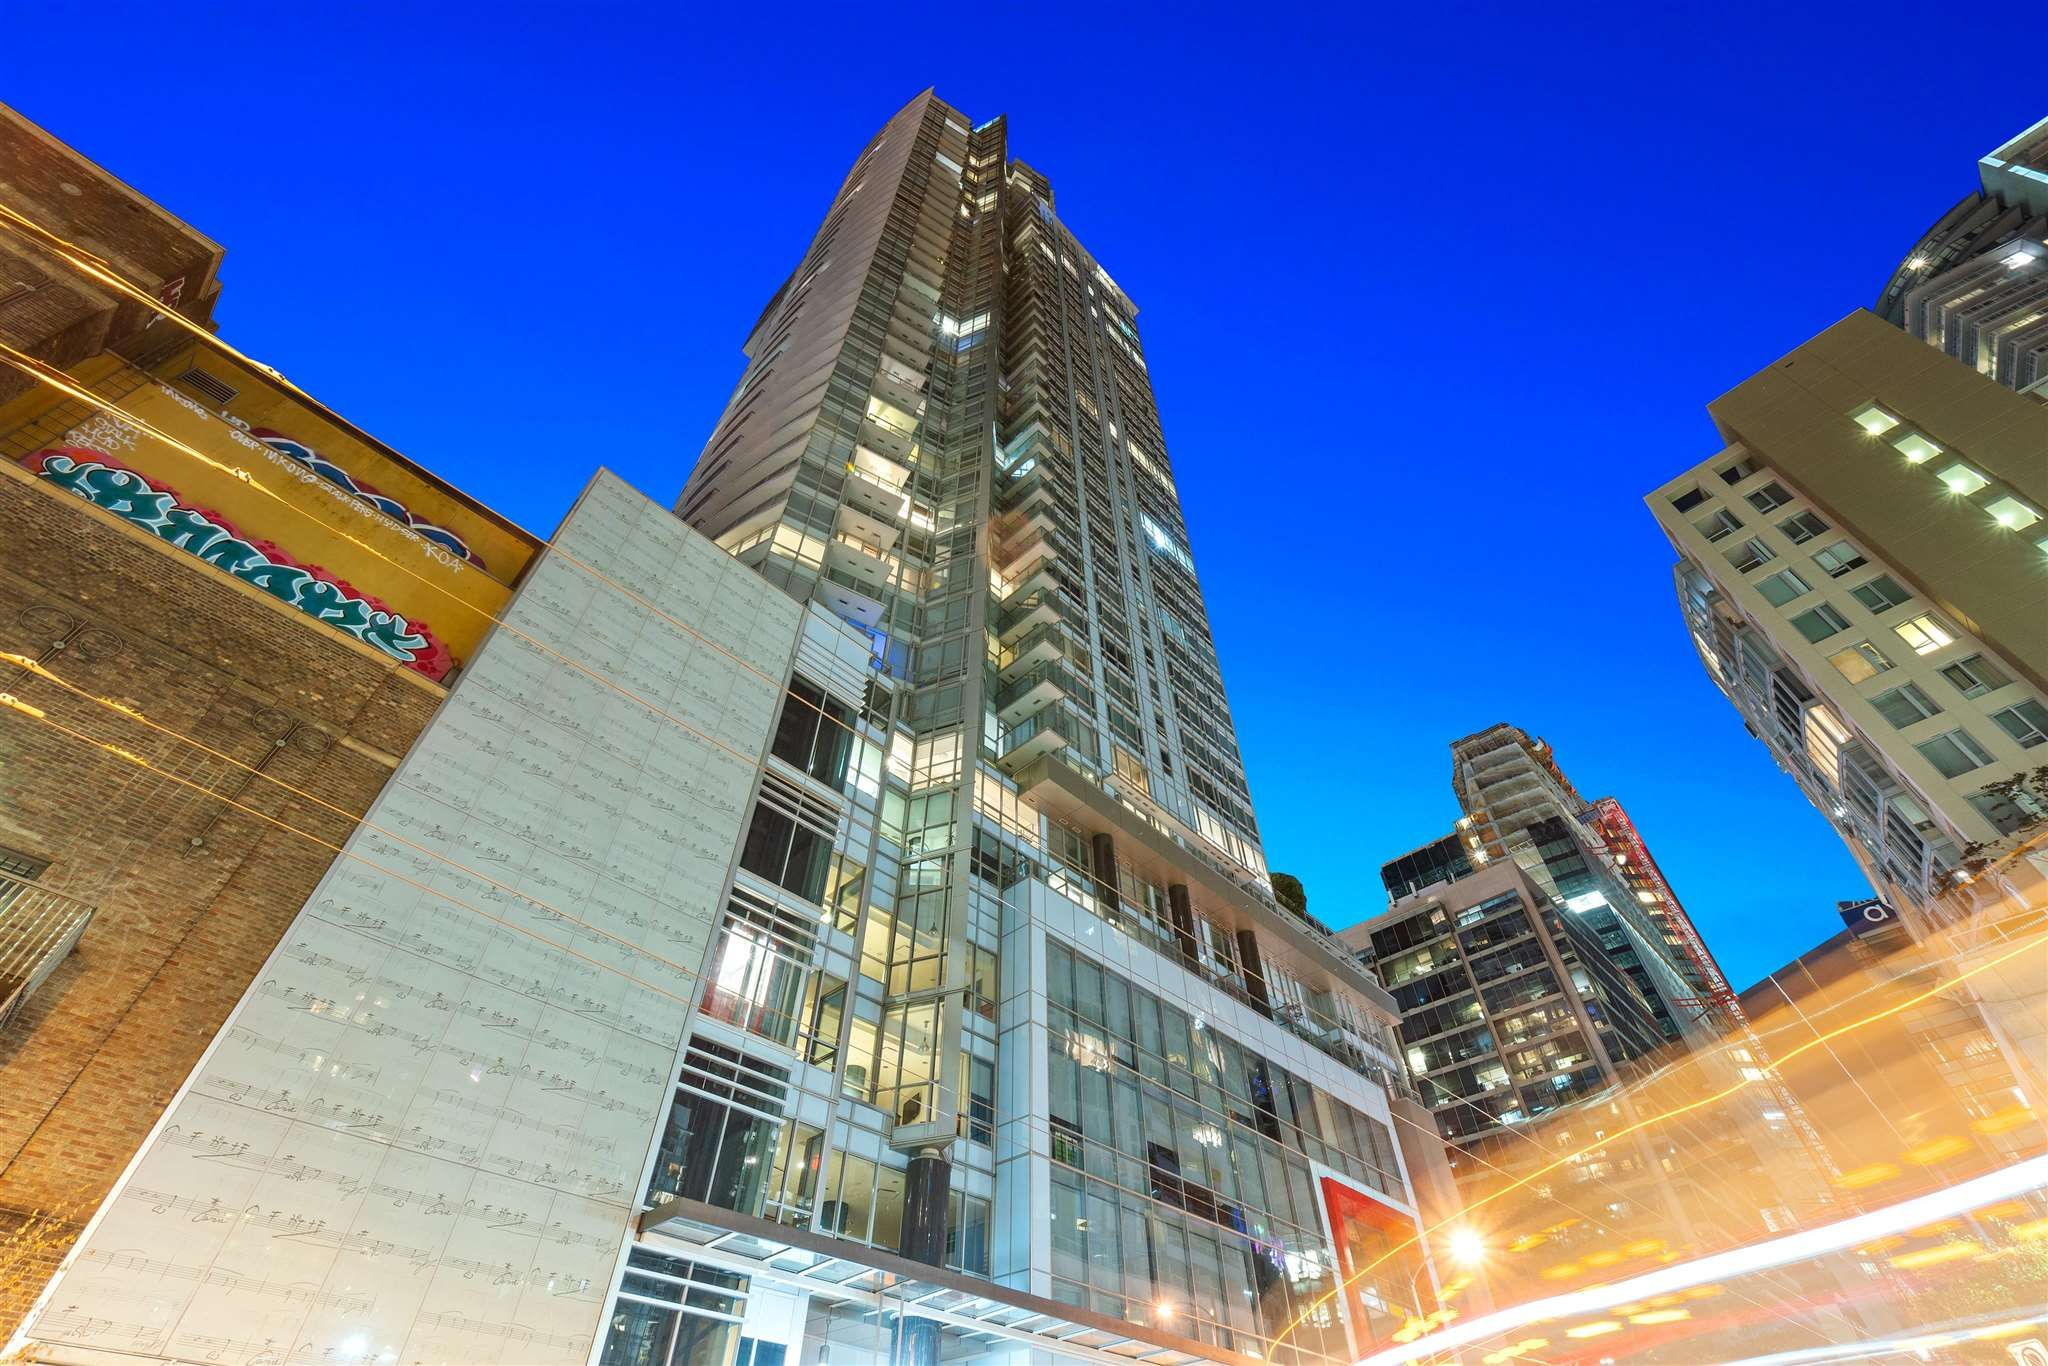 Main Photo: 2805 833 SEYMOUR STREET in Vancouver: Downtown VW Condo for sale (Vancouver West)  : MLS®# R2606534